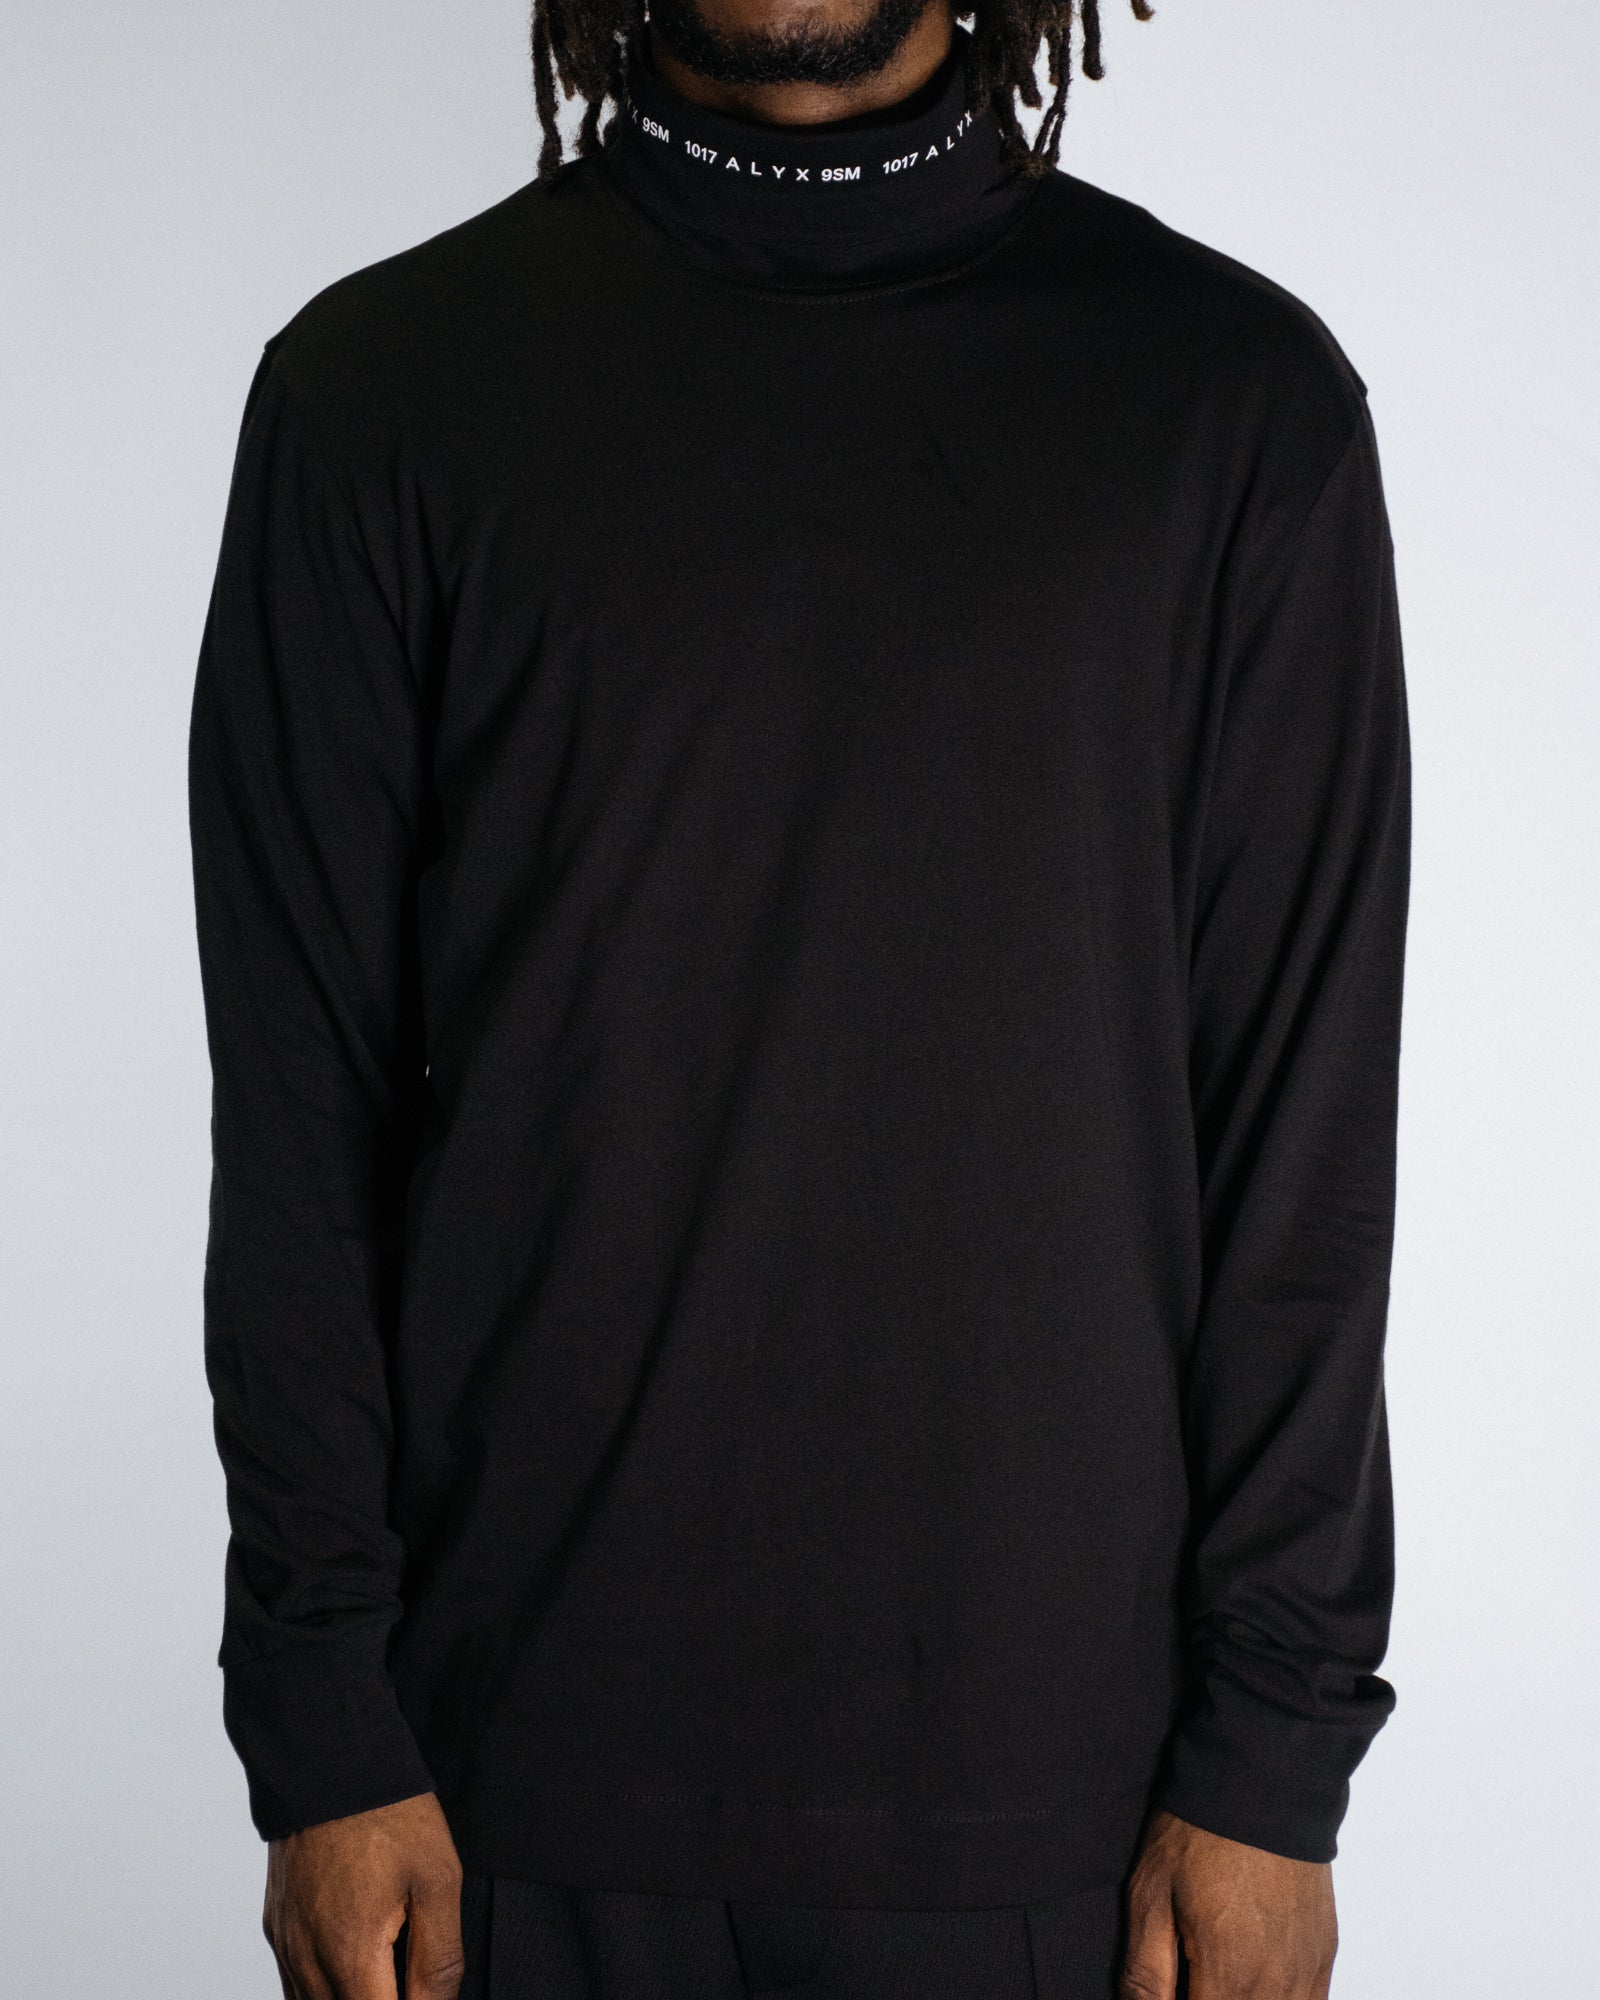 ALYX ROLL NECK LONG SLEEVE TEE